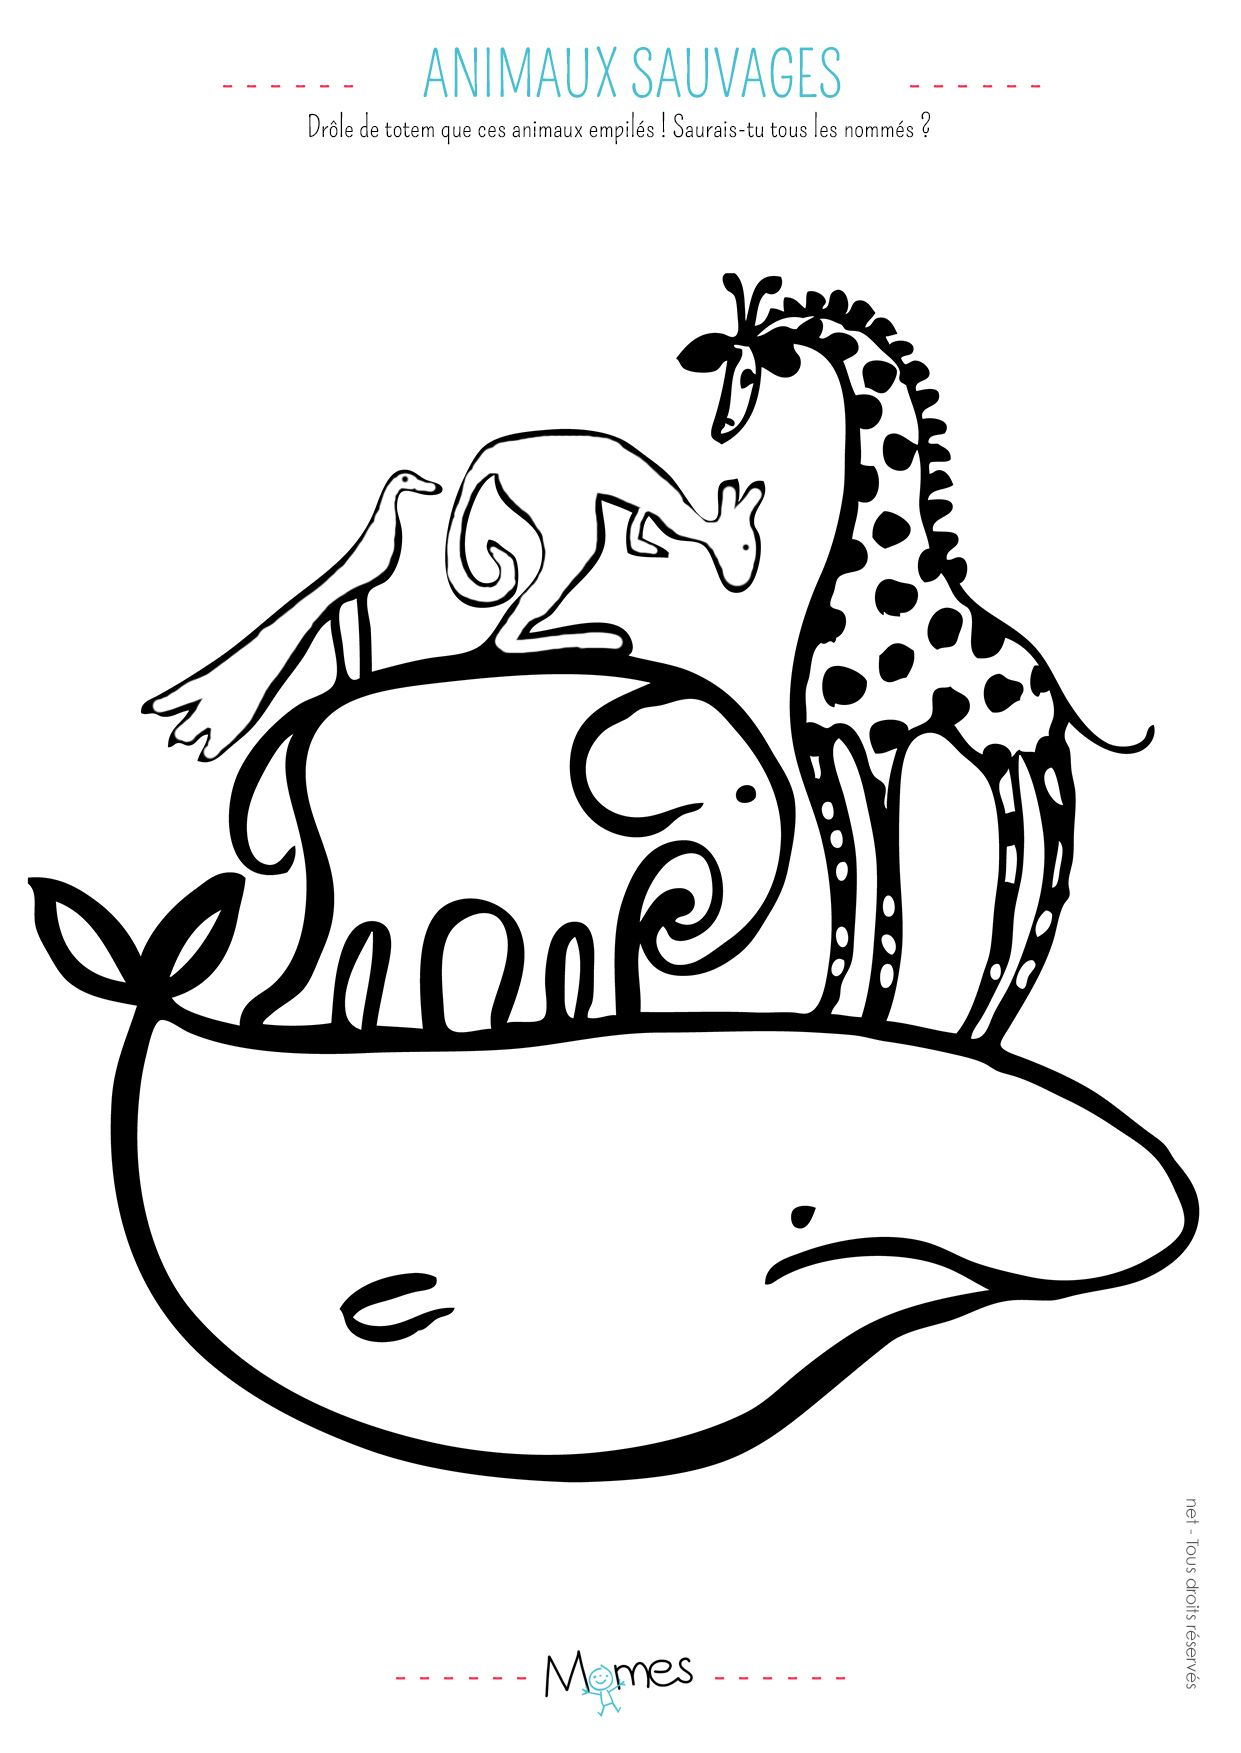 Coloriage Animaux Totem.Coloriage Animaux Sauvage Decoration Coloriage Animaux Animaux